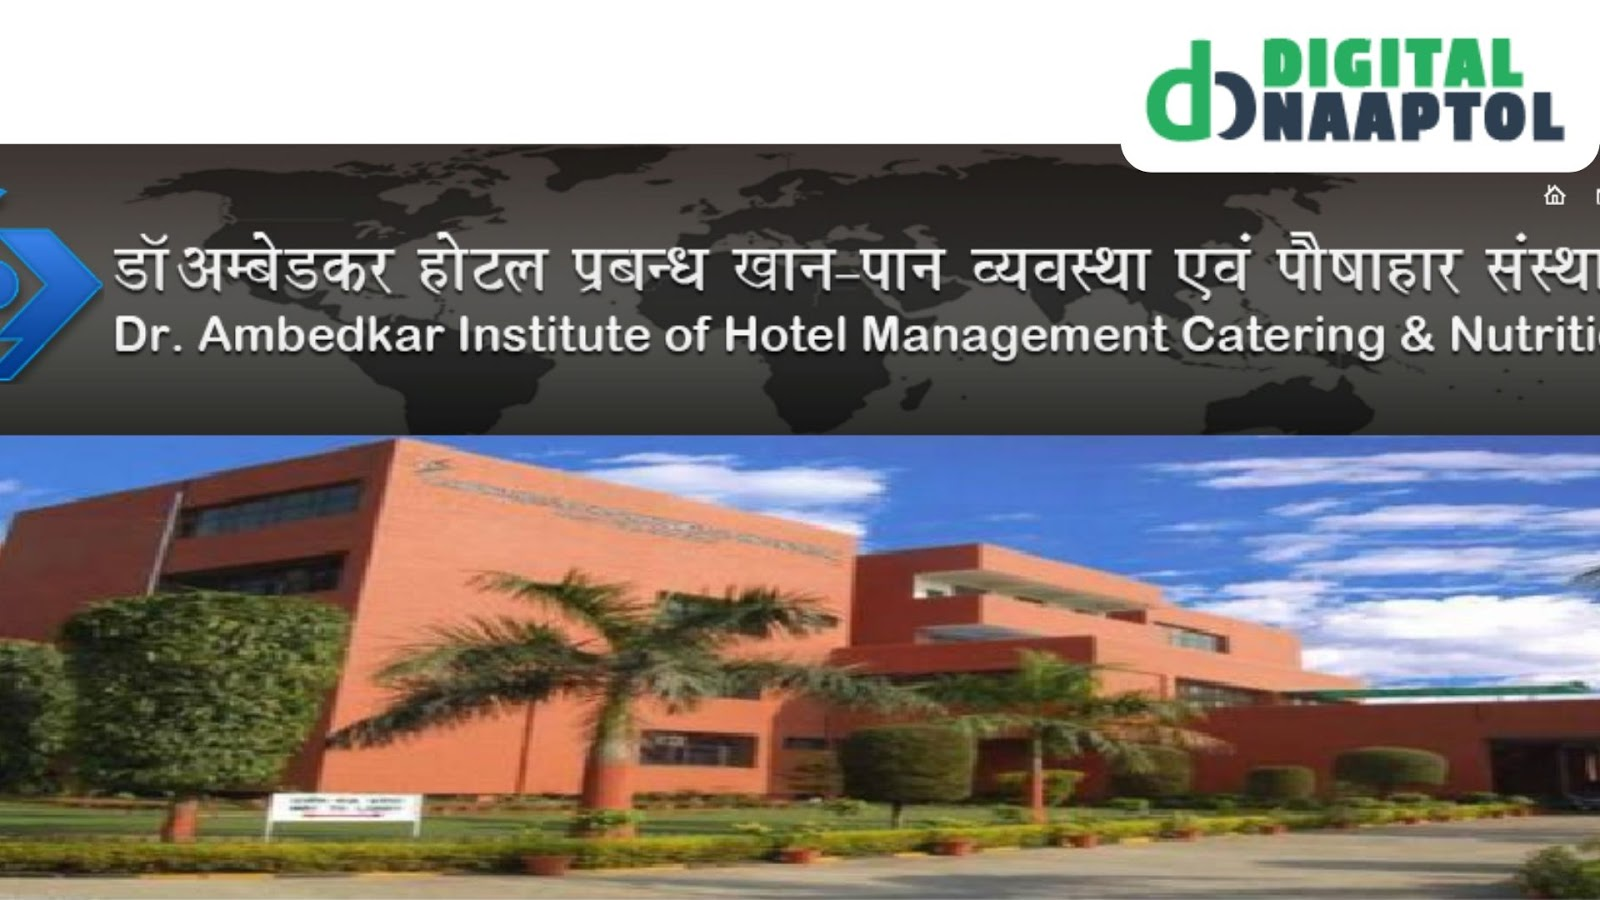 Dr Ambedkar Institute of Hotel Management Catering & Nutrition